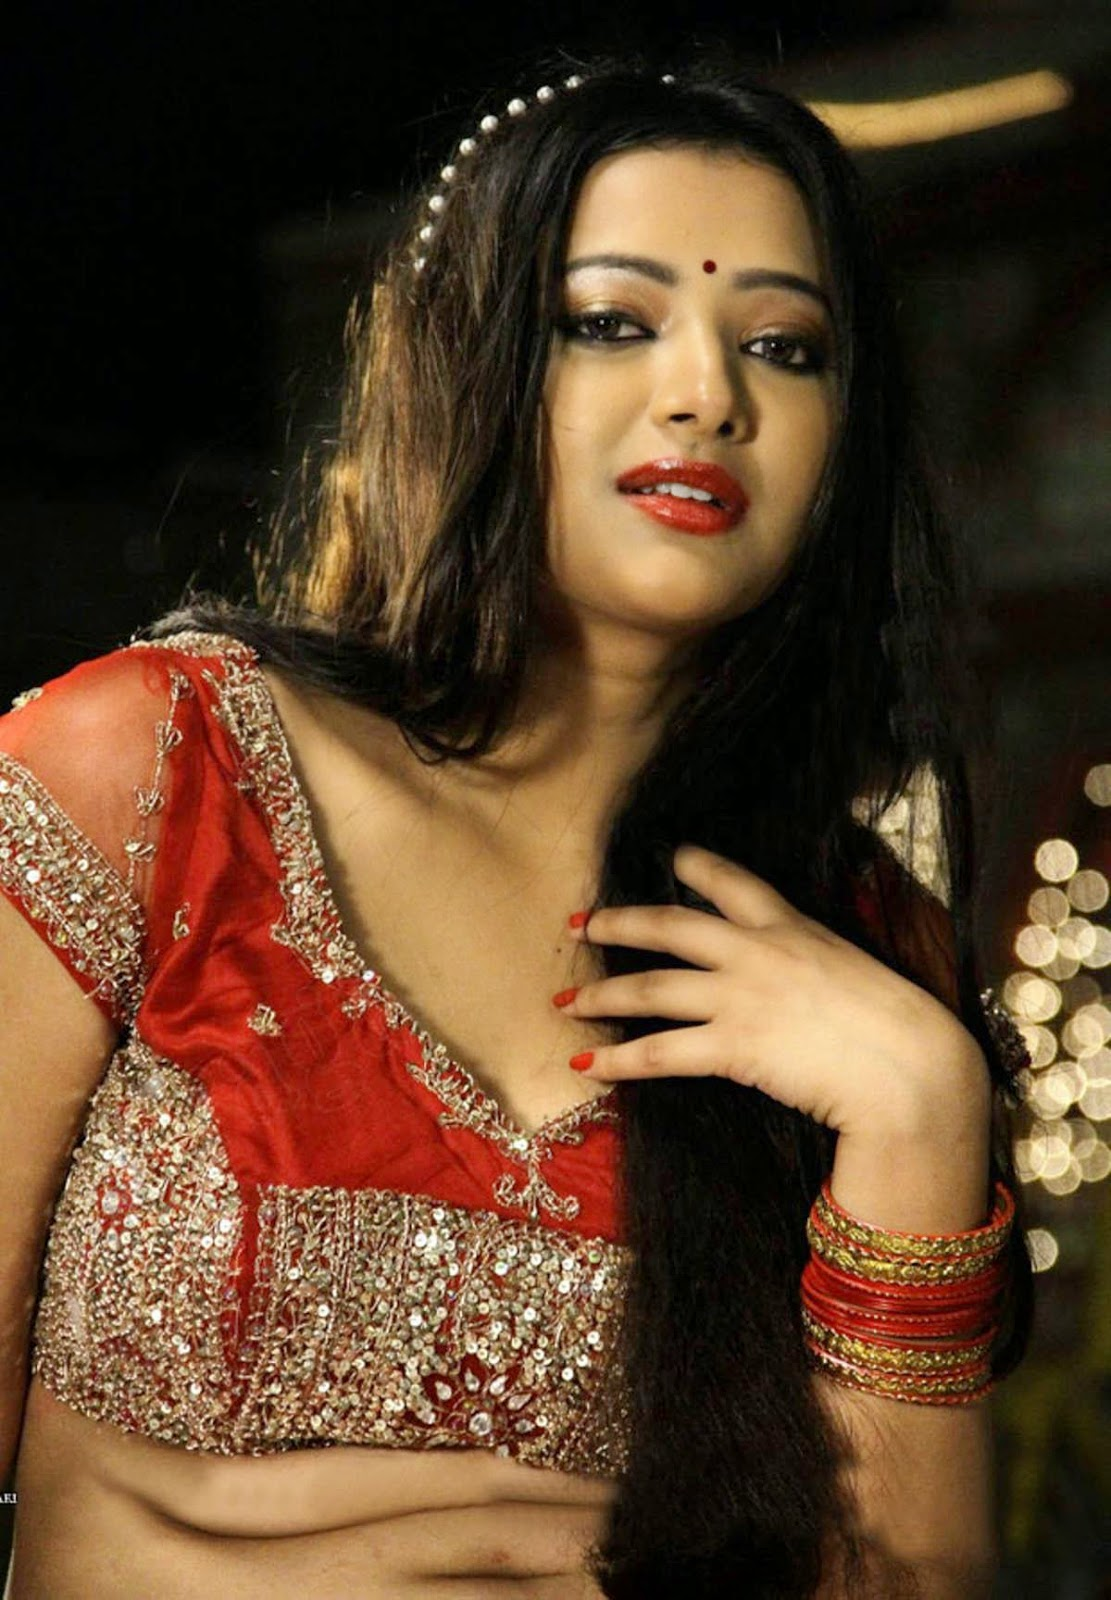 Makdee Actress Shweta Basu Turned to Prostitution